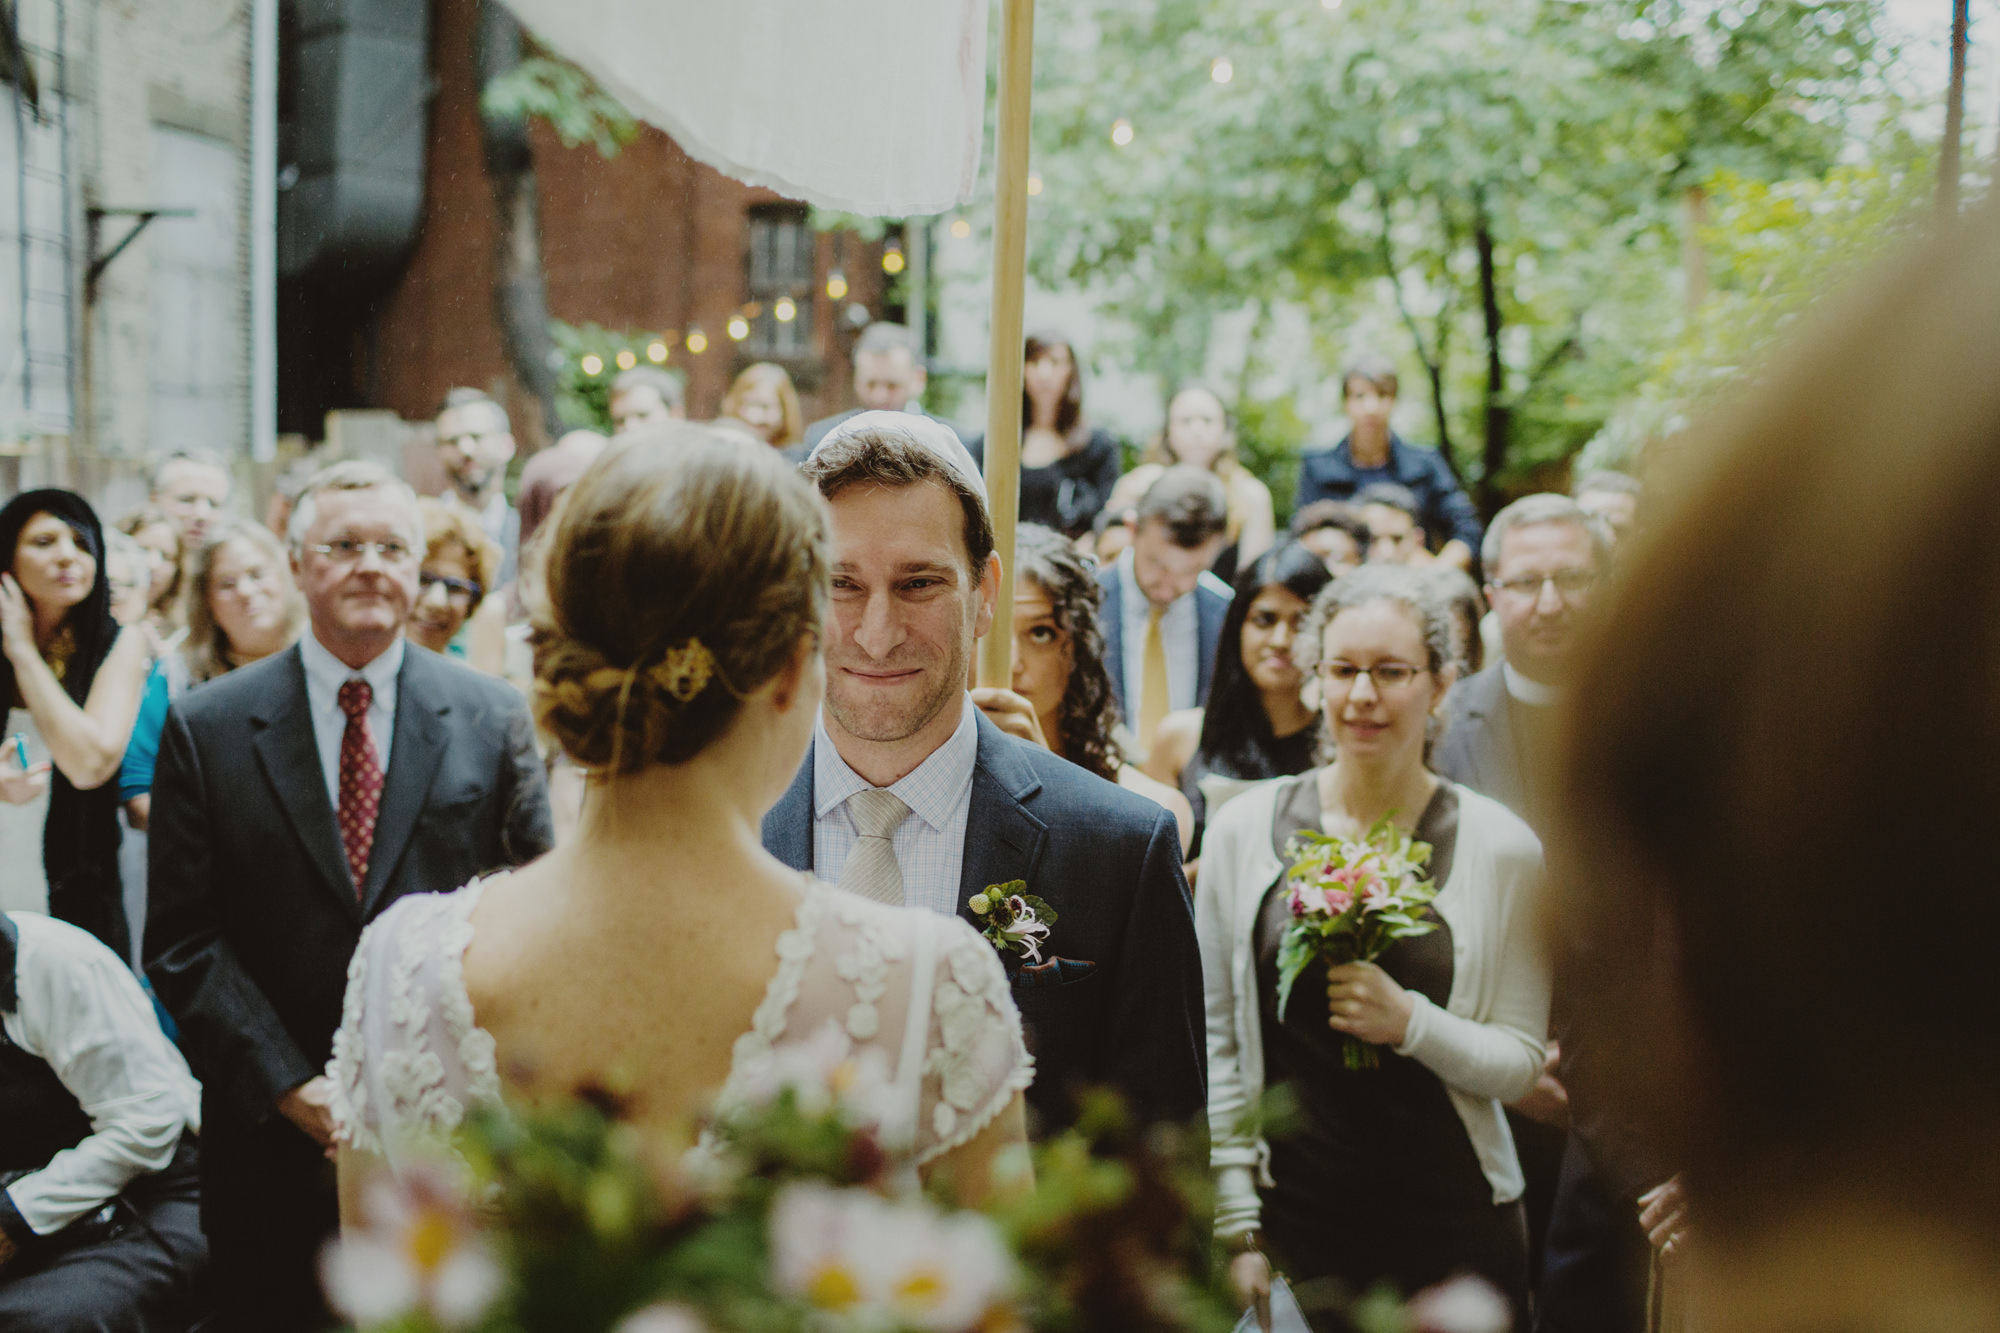 brooklyn_wedding_flatbushfarm_sammblake_032.jpg